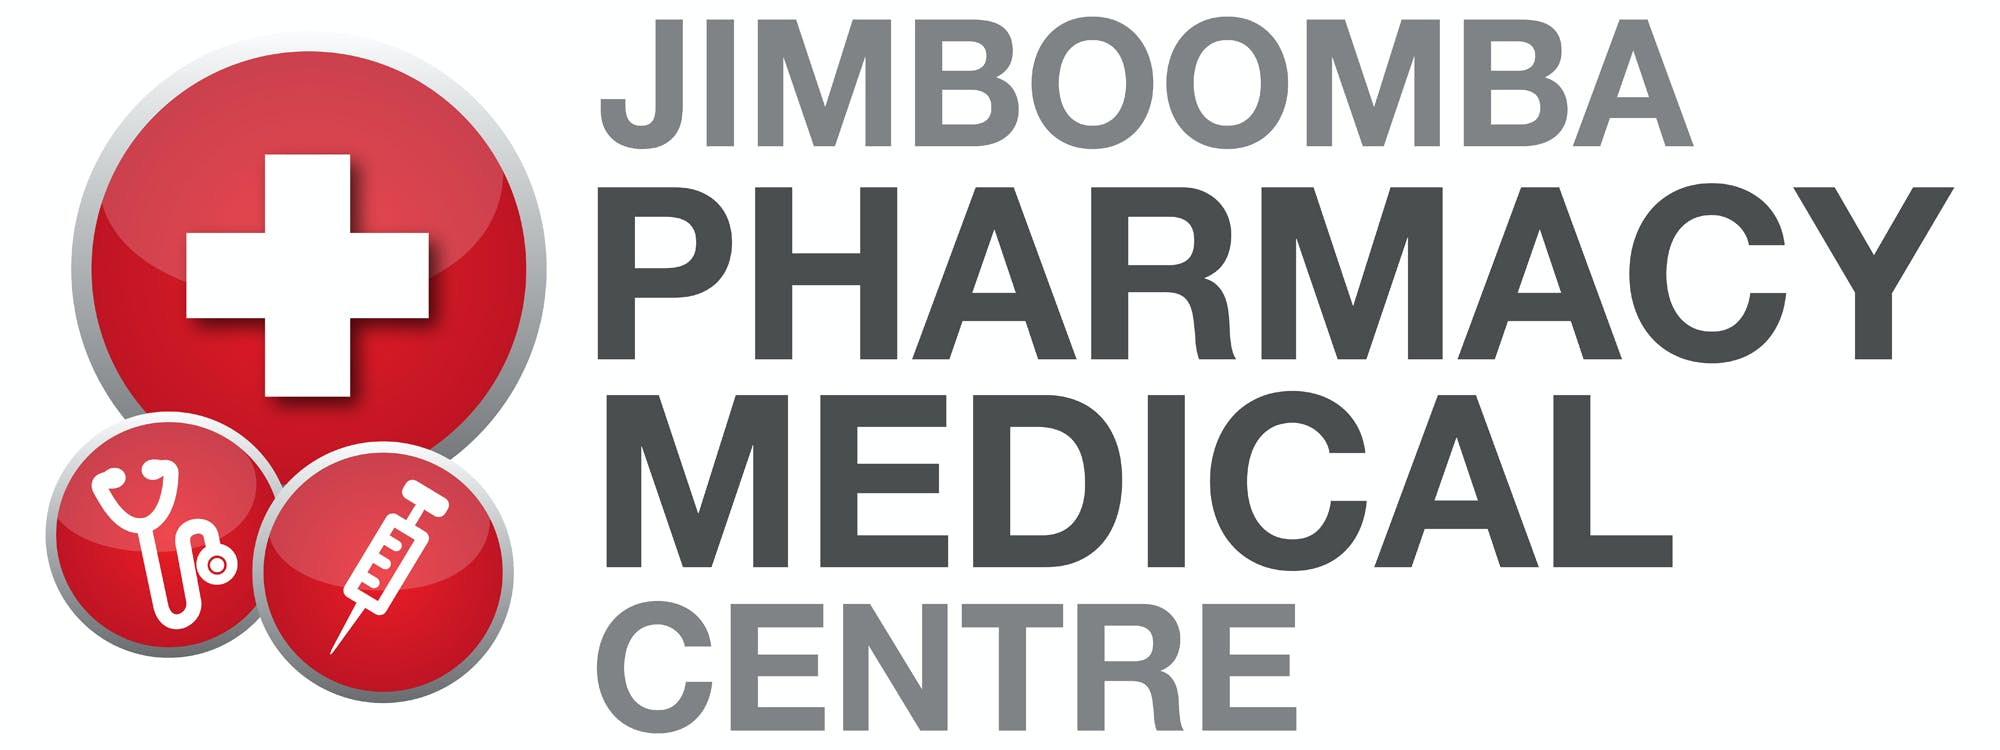 Jimboomba Pharmacy Medical Centre Logo